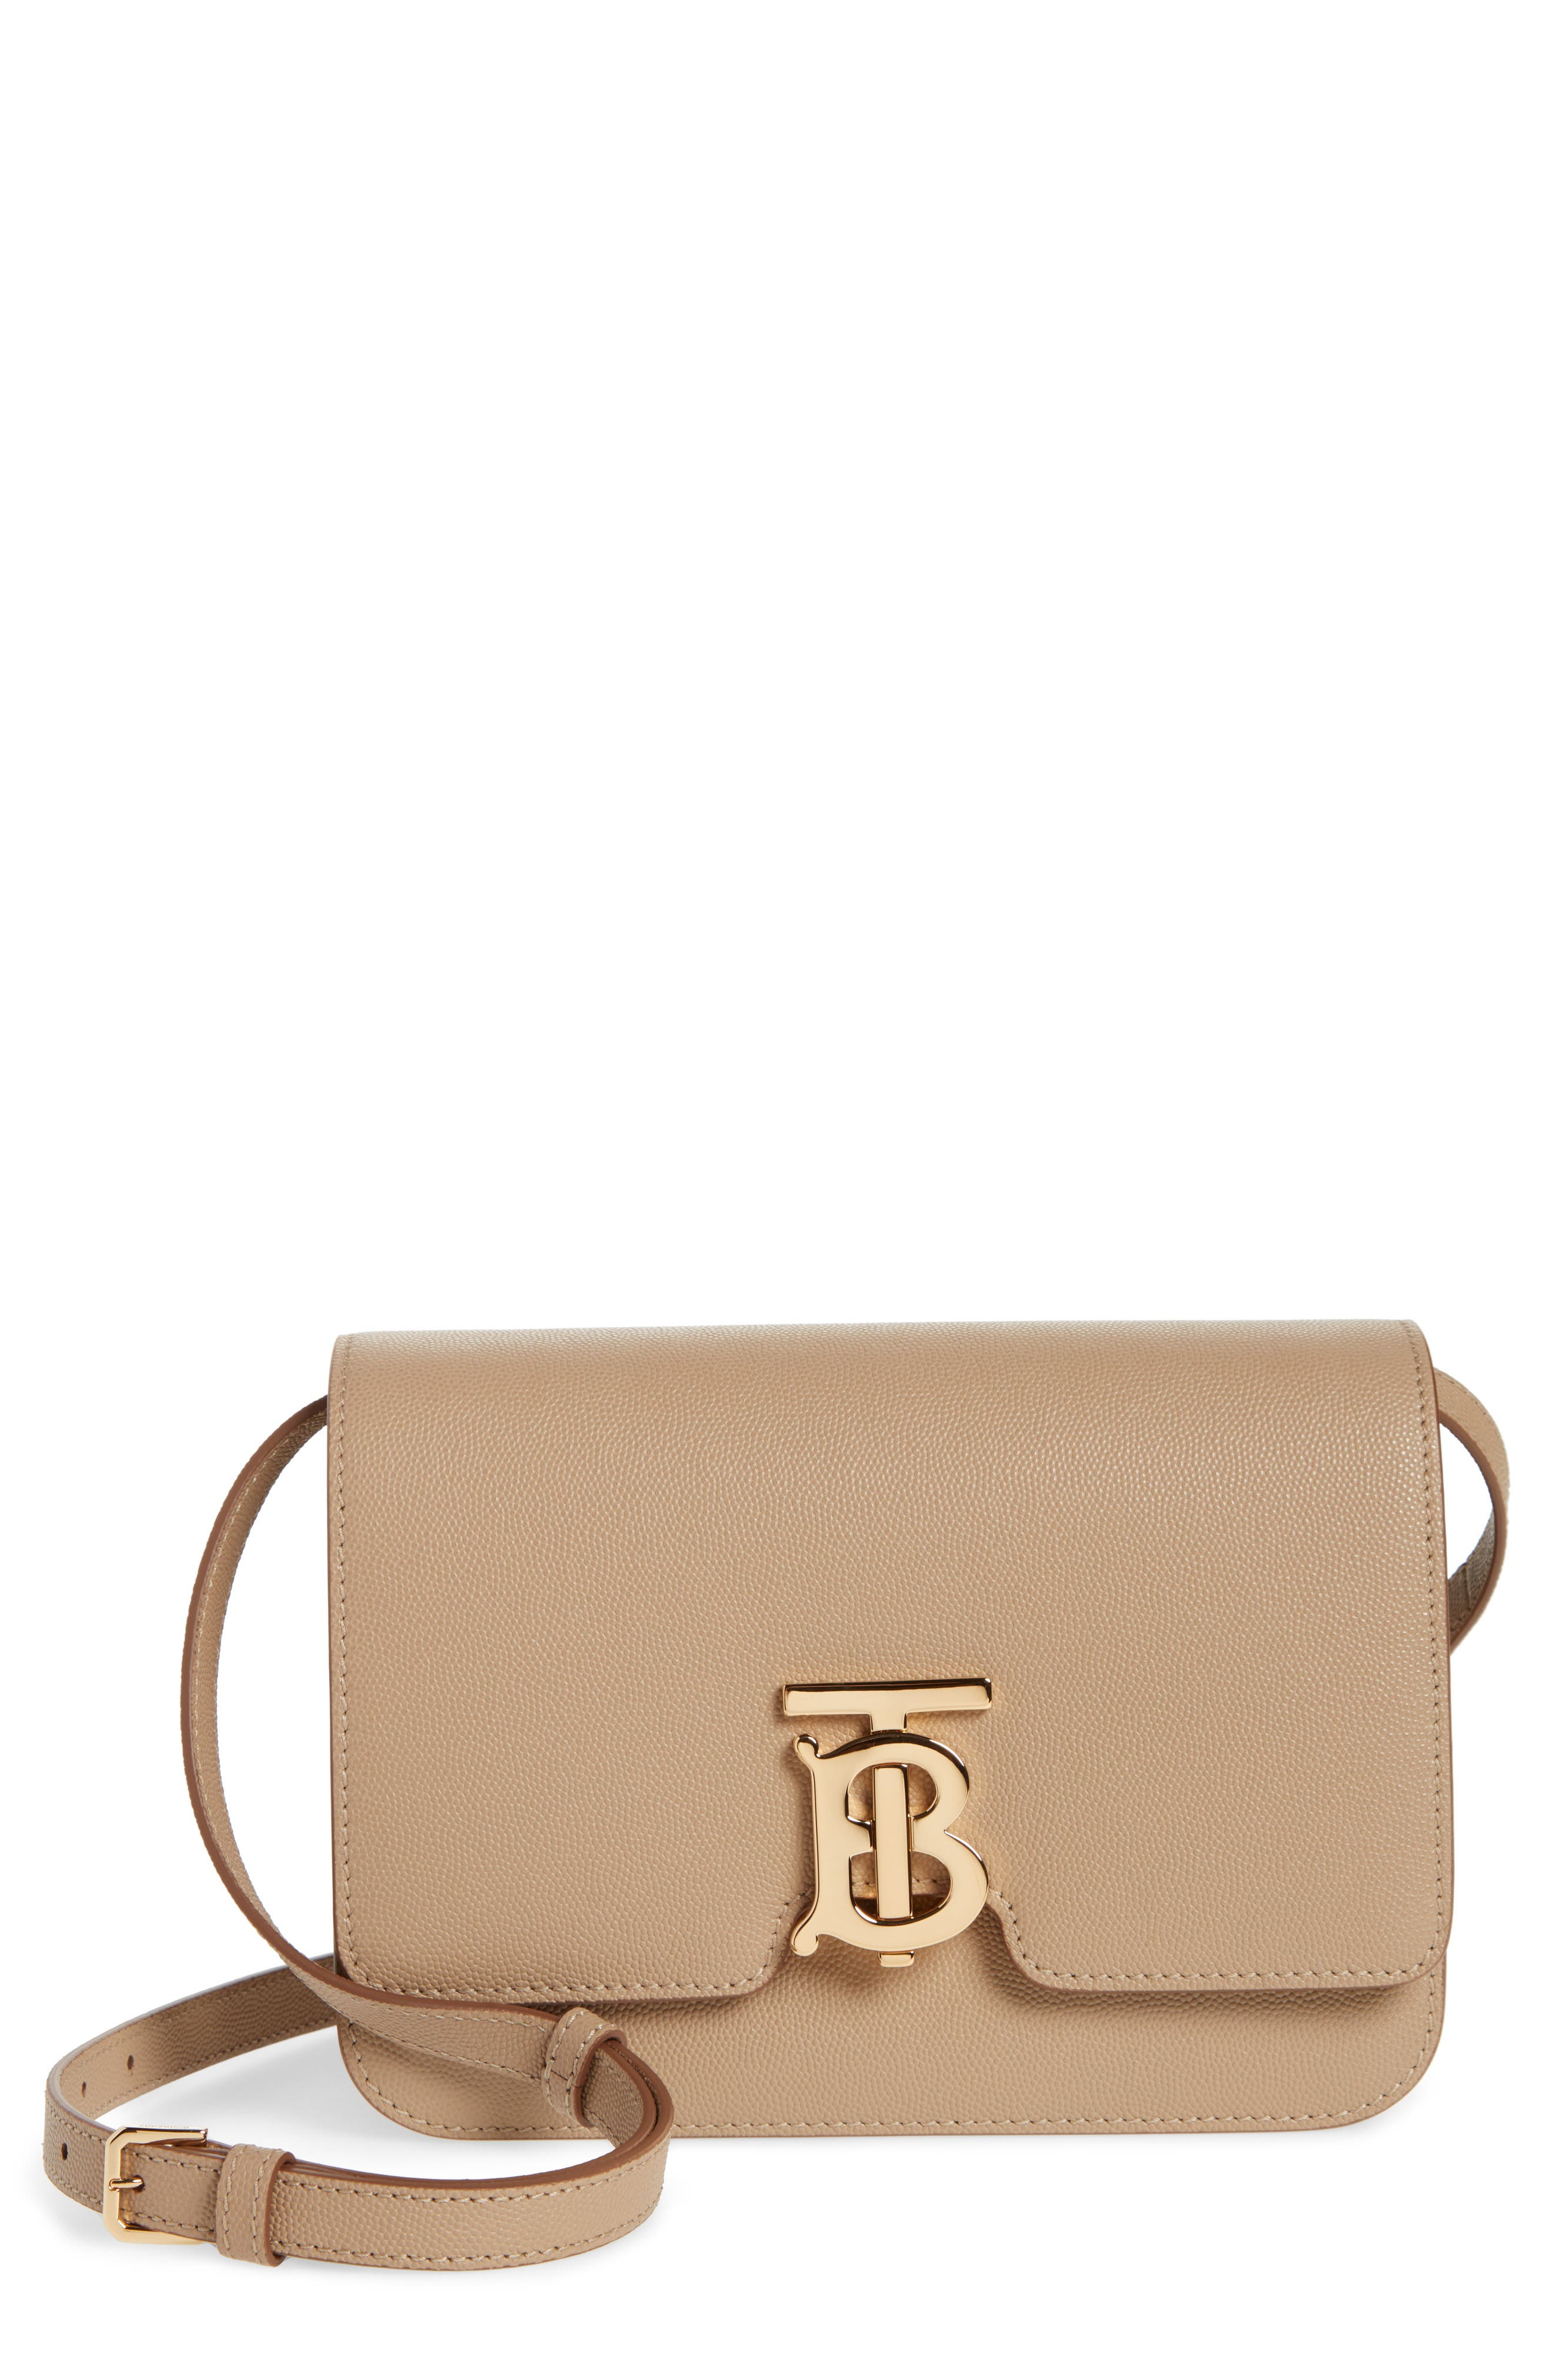 Burberry Small TB Grainy Leather Bag | Nordstrom